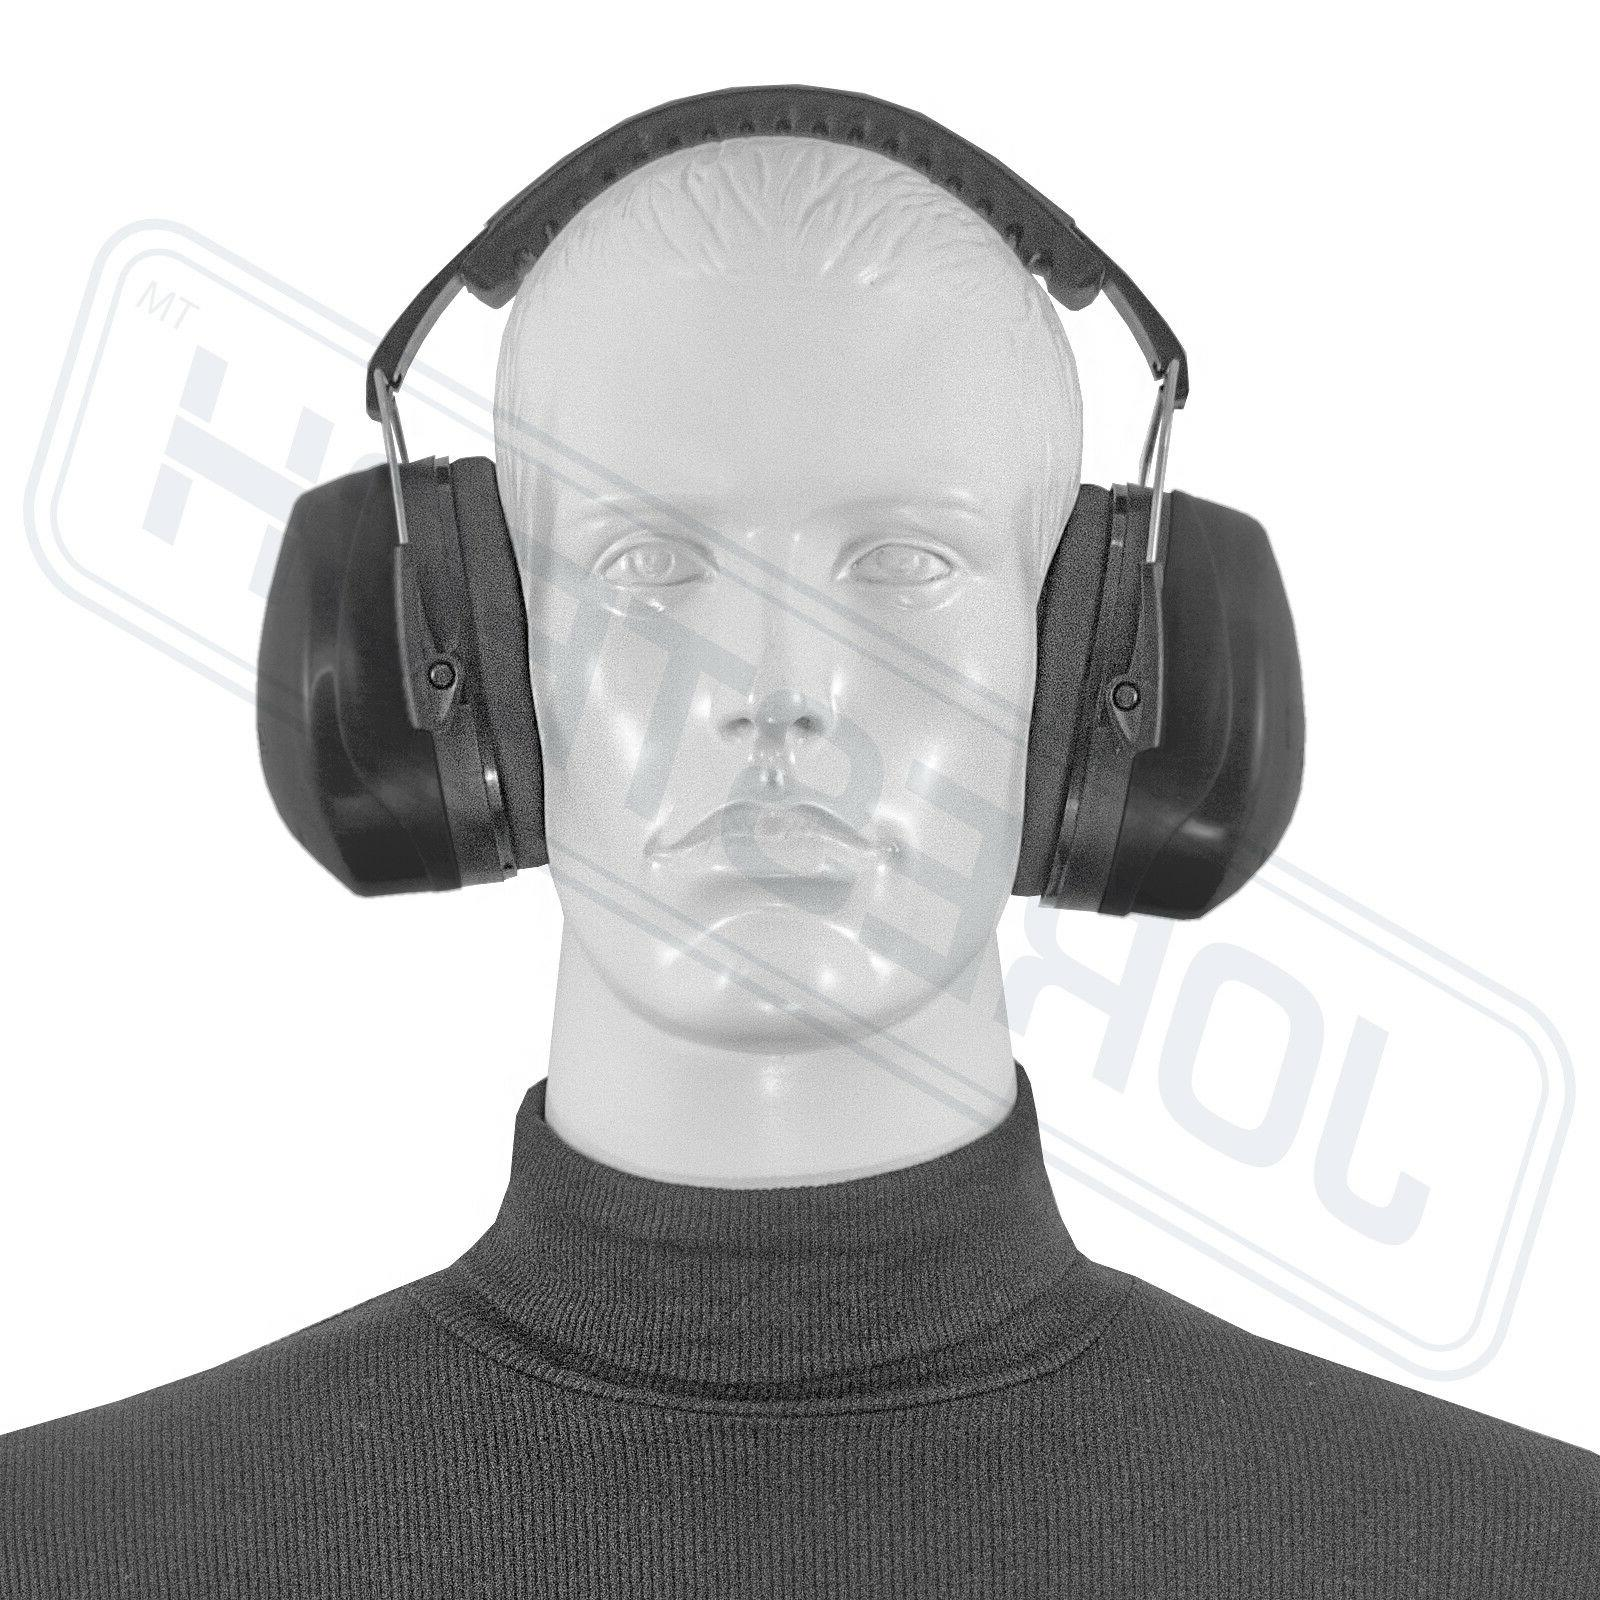 Ear Muffs Hearing Noise Reduction Gun